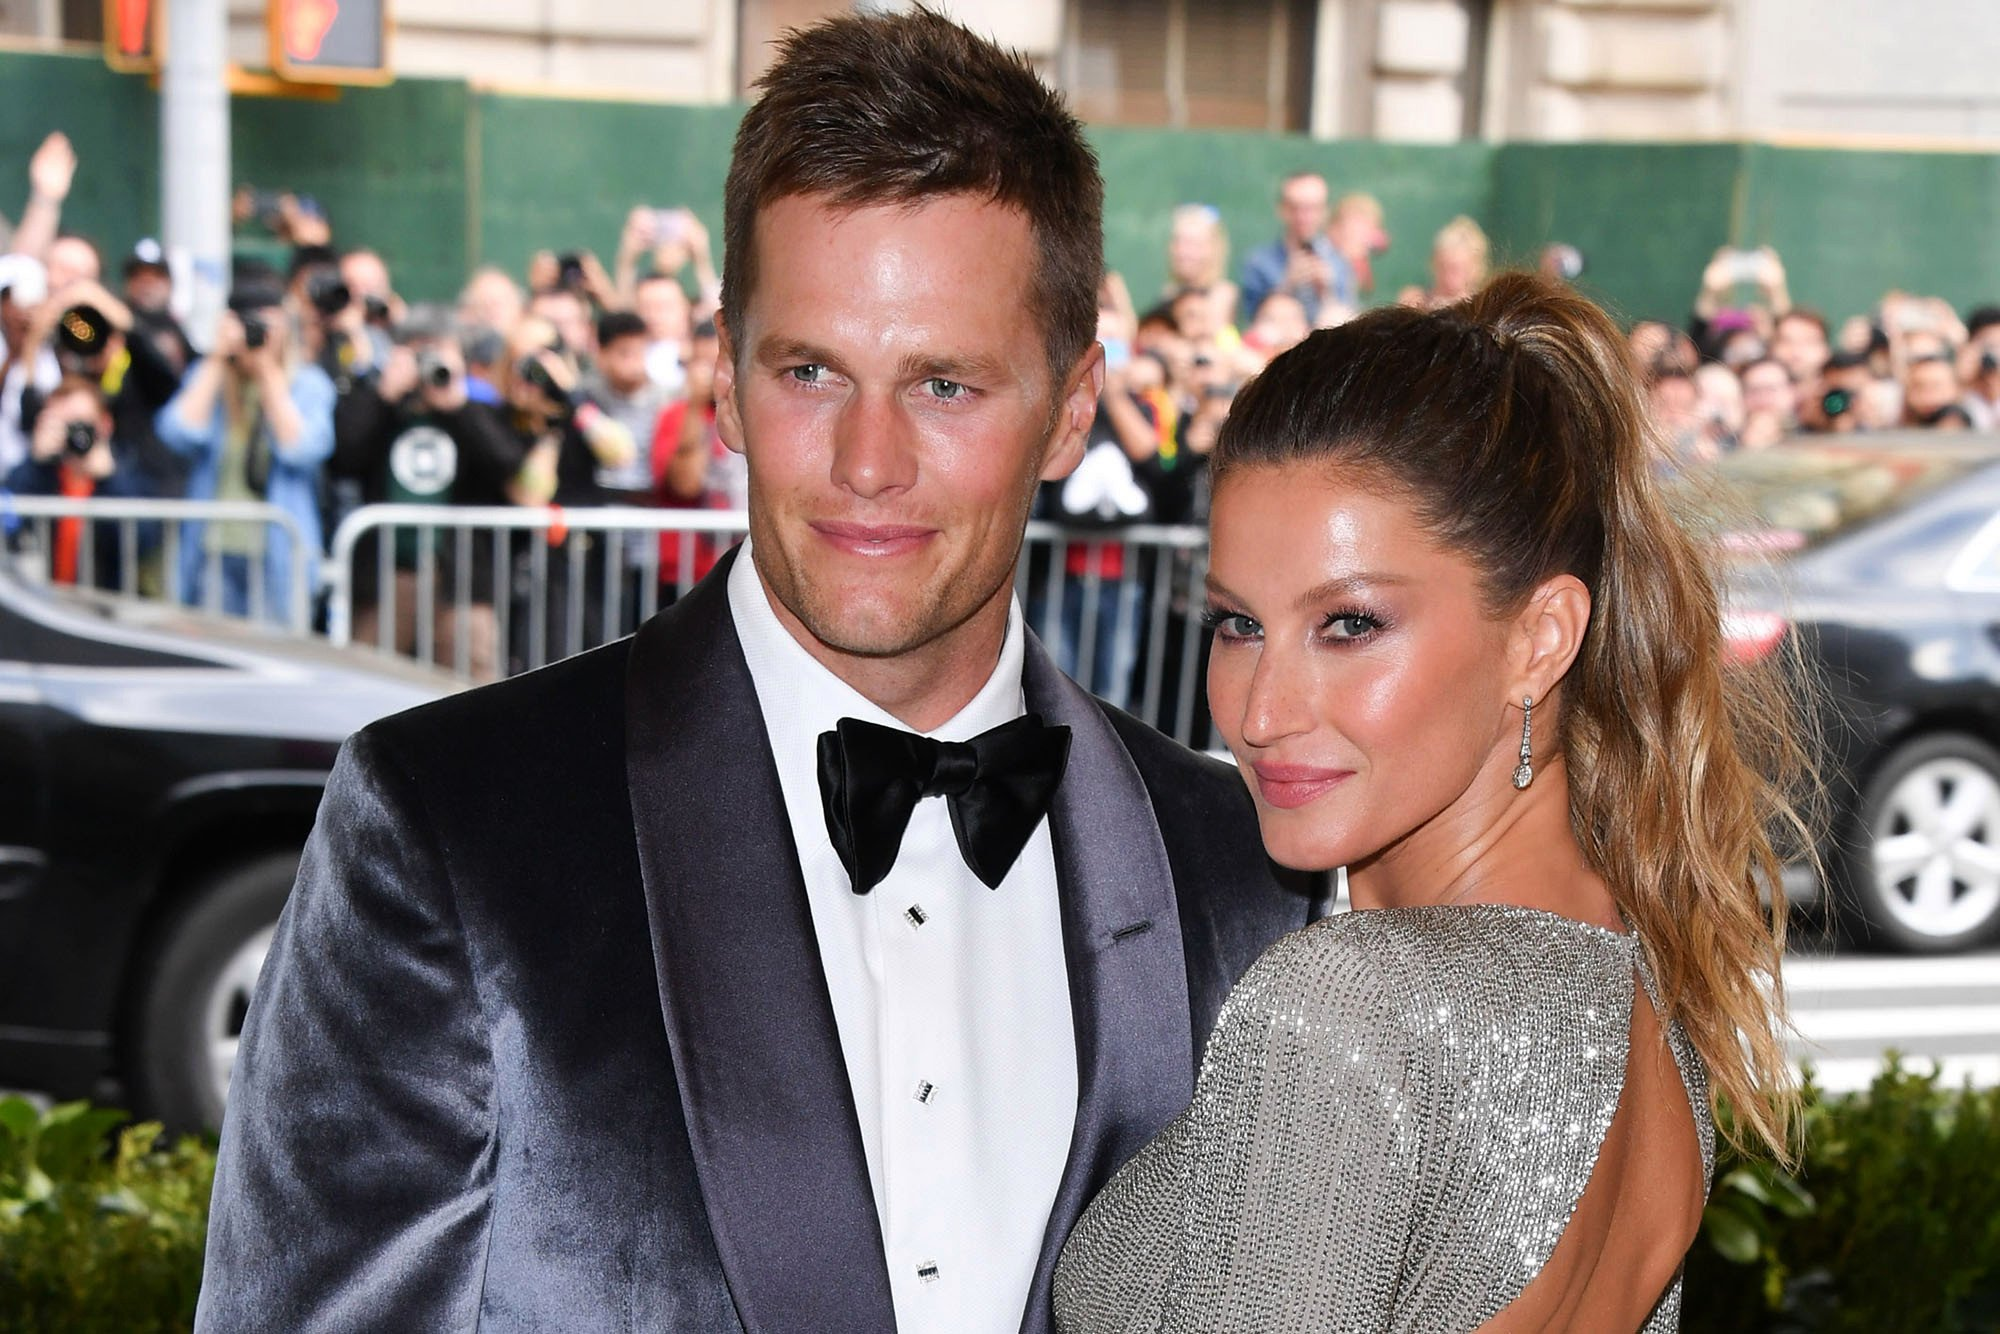 Gisele Bündchen to detail Tom Brady marriage in new book